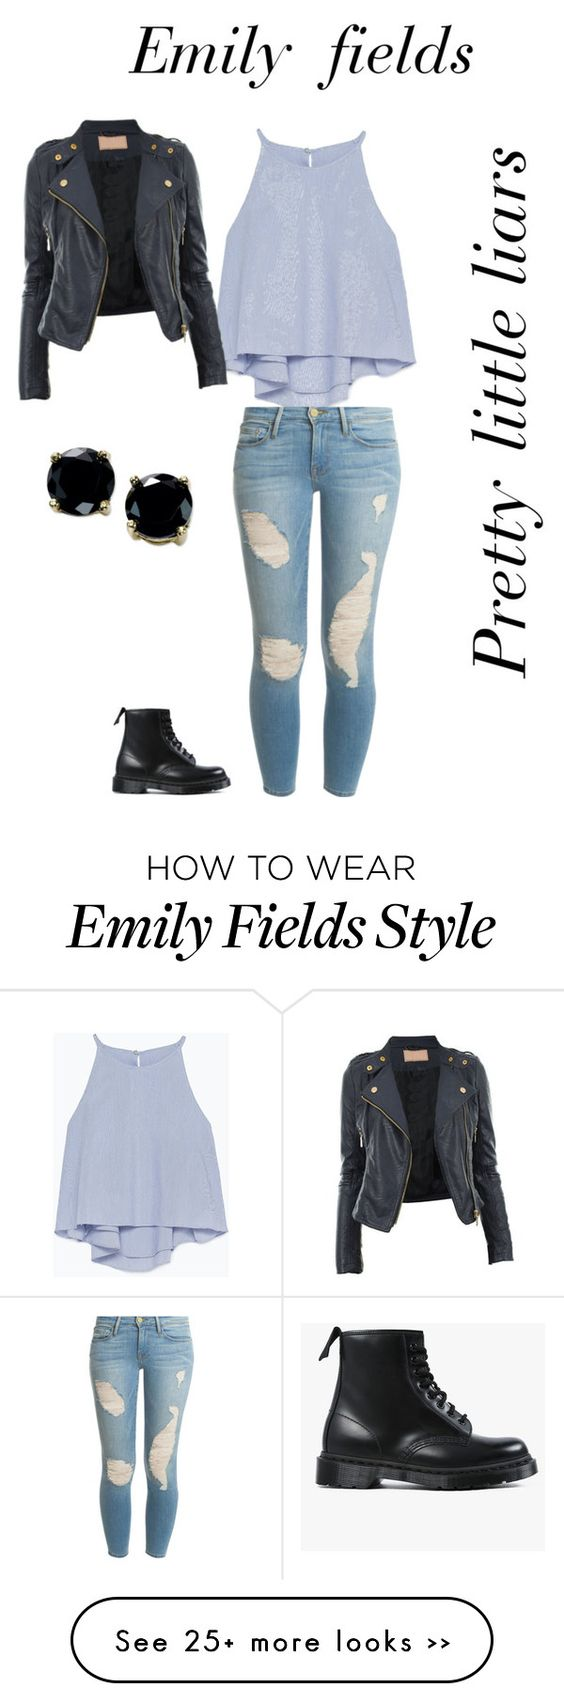 """Emily fields inspired look"" by desiv2001 on Polyvore"